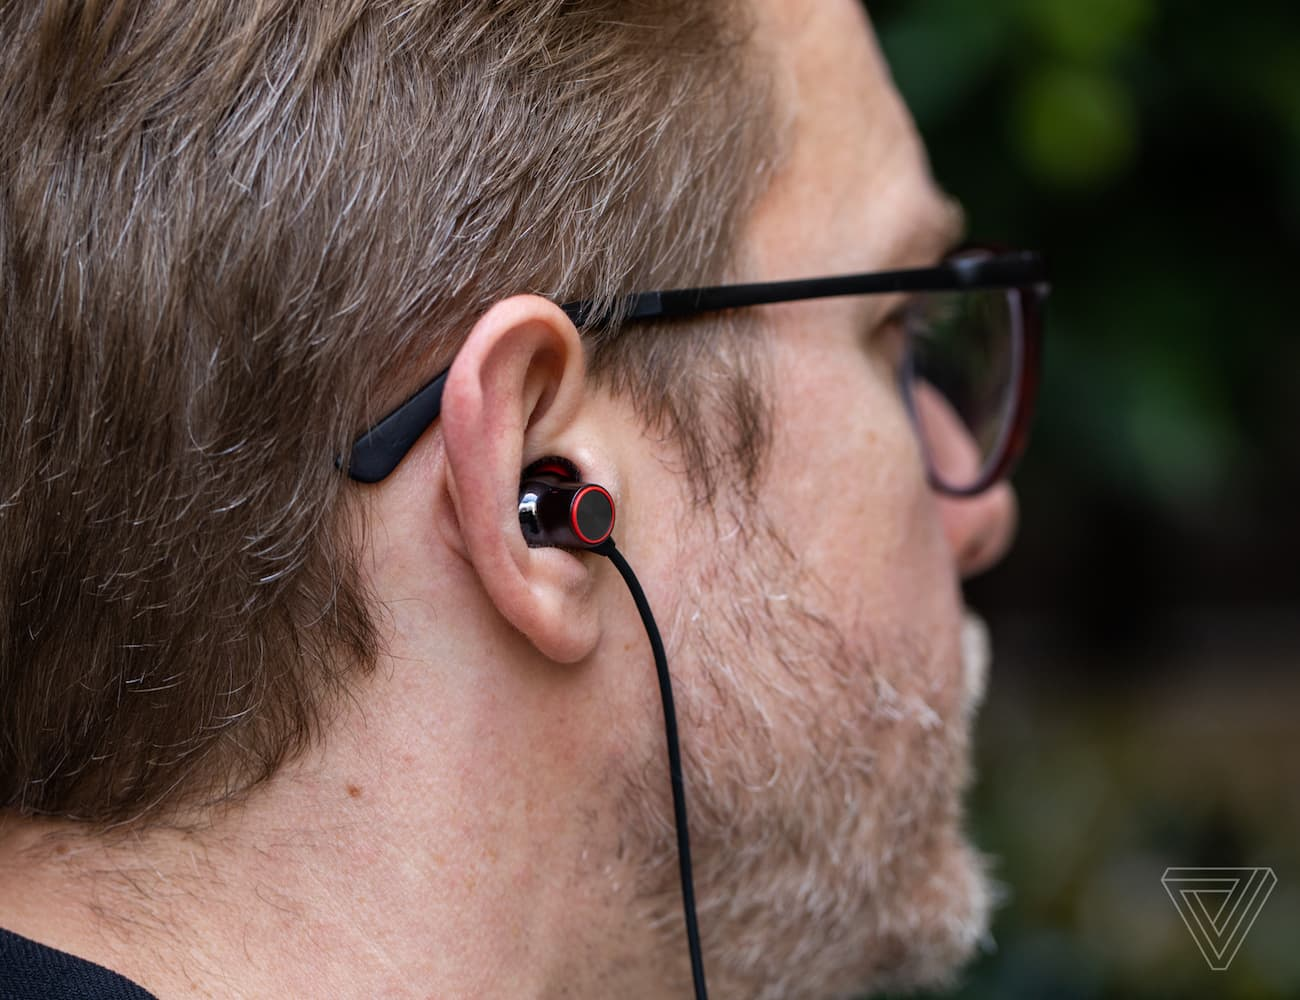 OnePlus Bullets Wireless 2 Google Assistant Earbuds are all about perfect fit